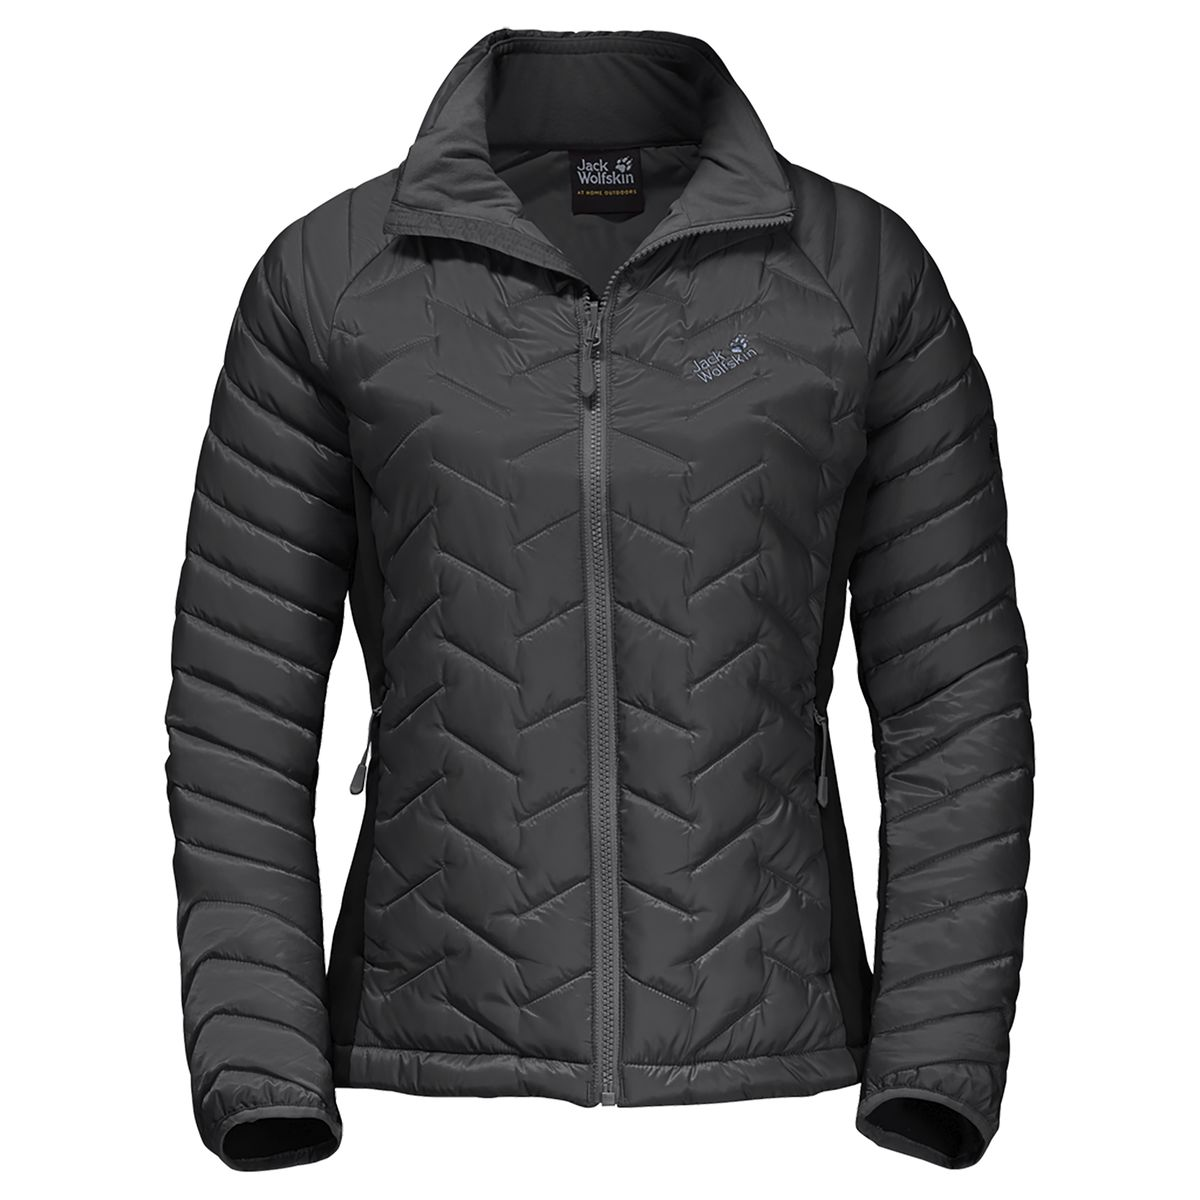 ICY WATER Damen Winterjacke